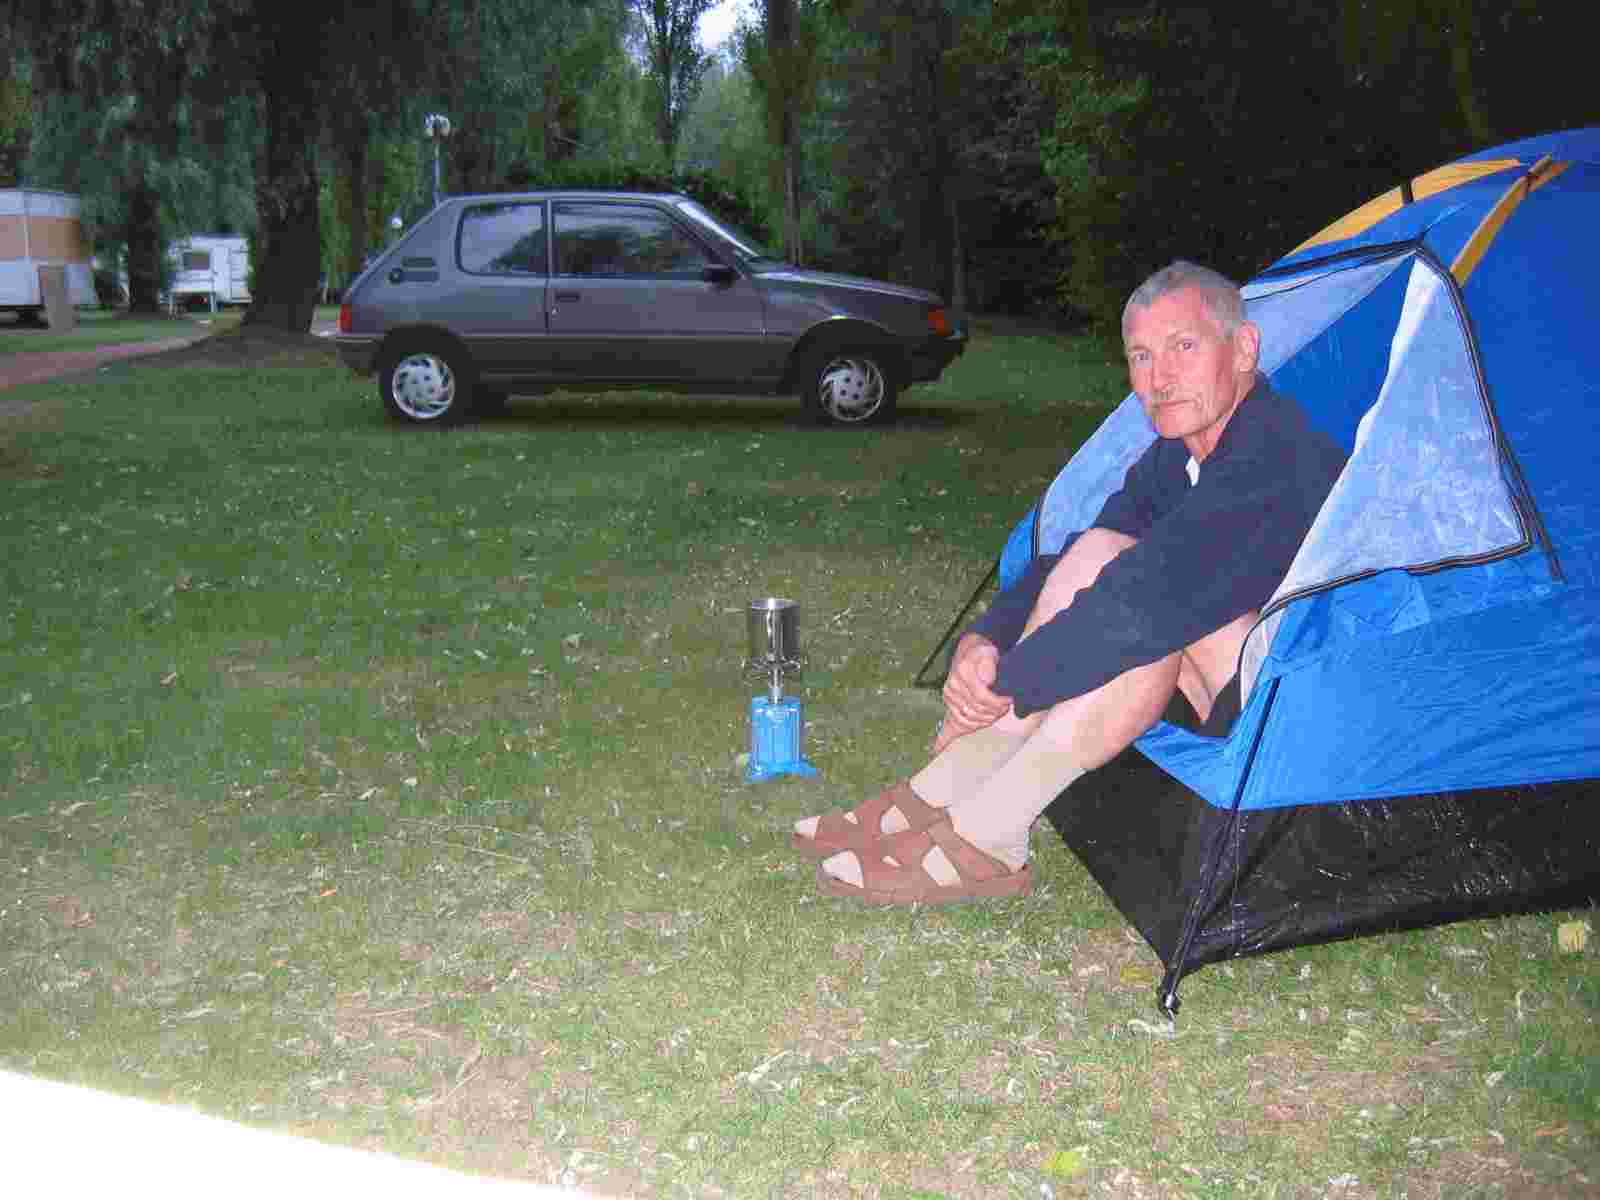 Camping in Tortequesne